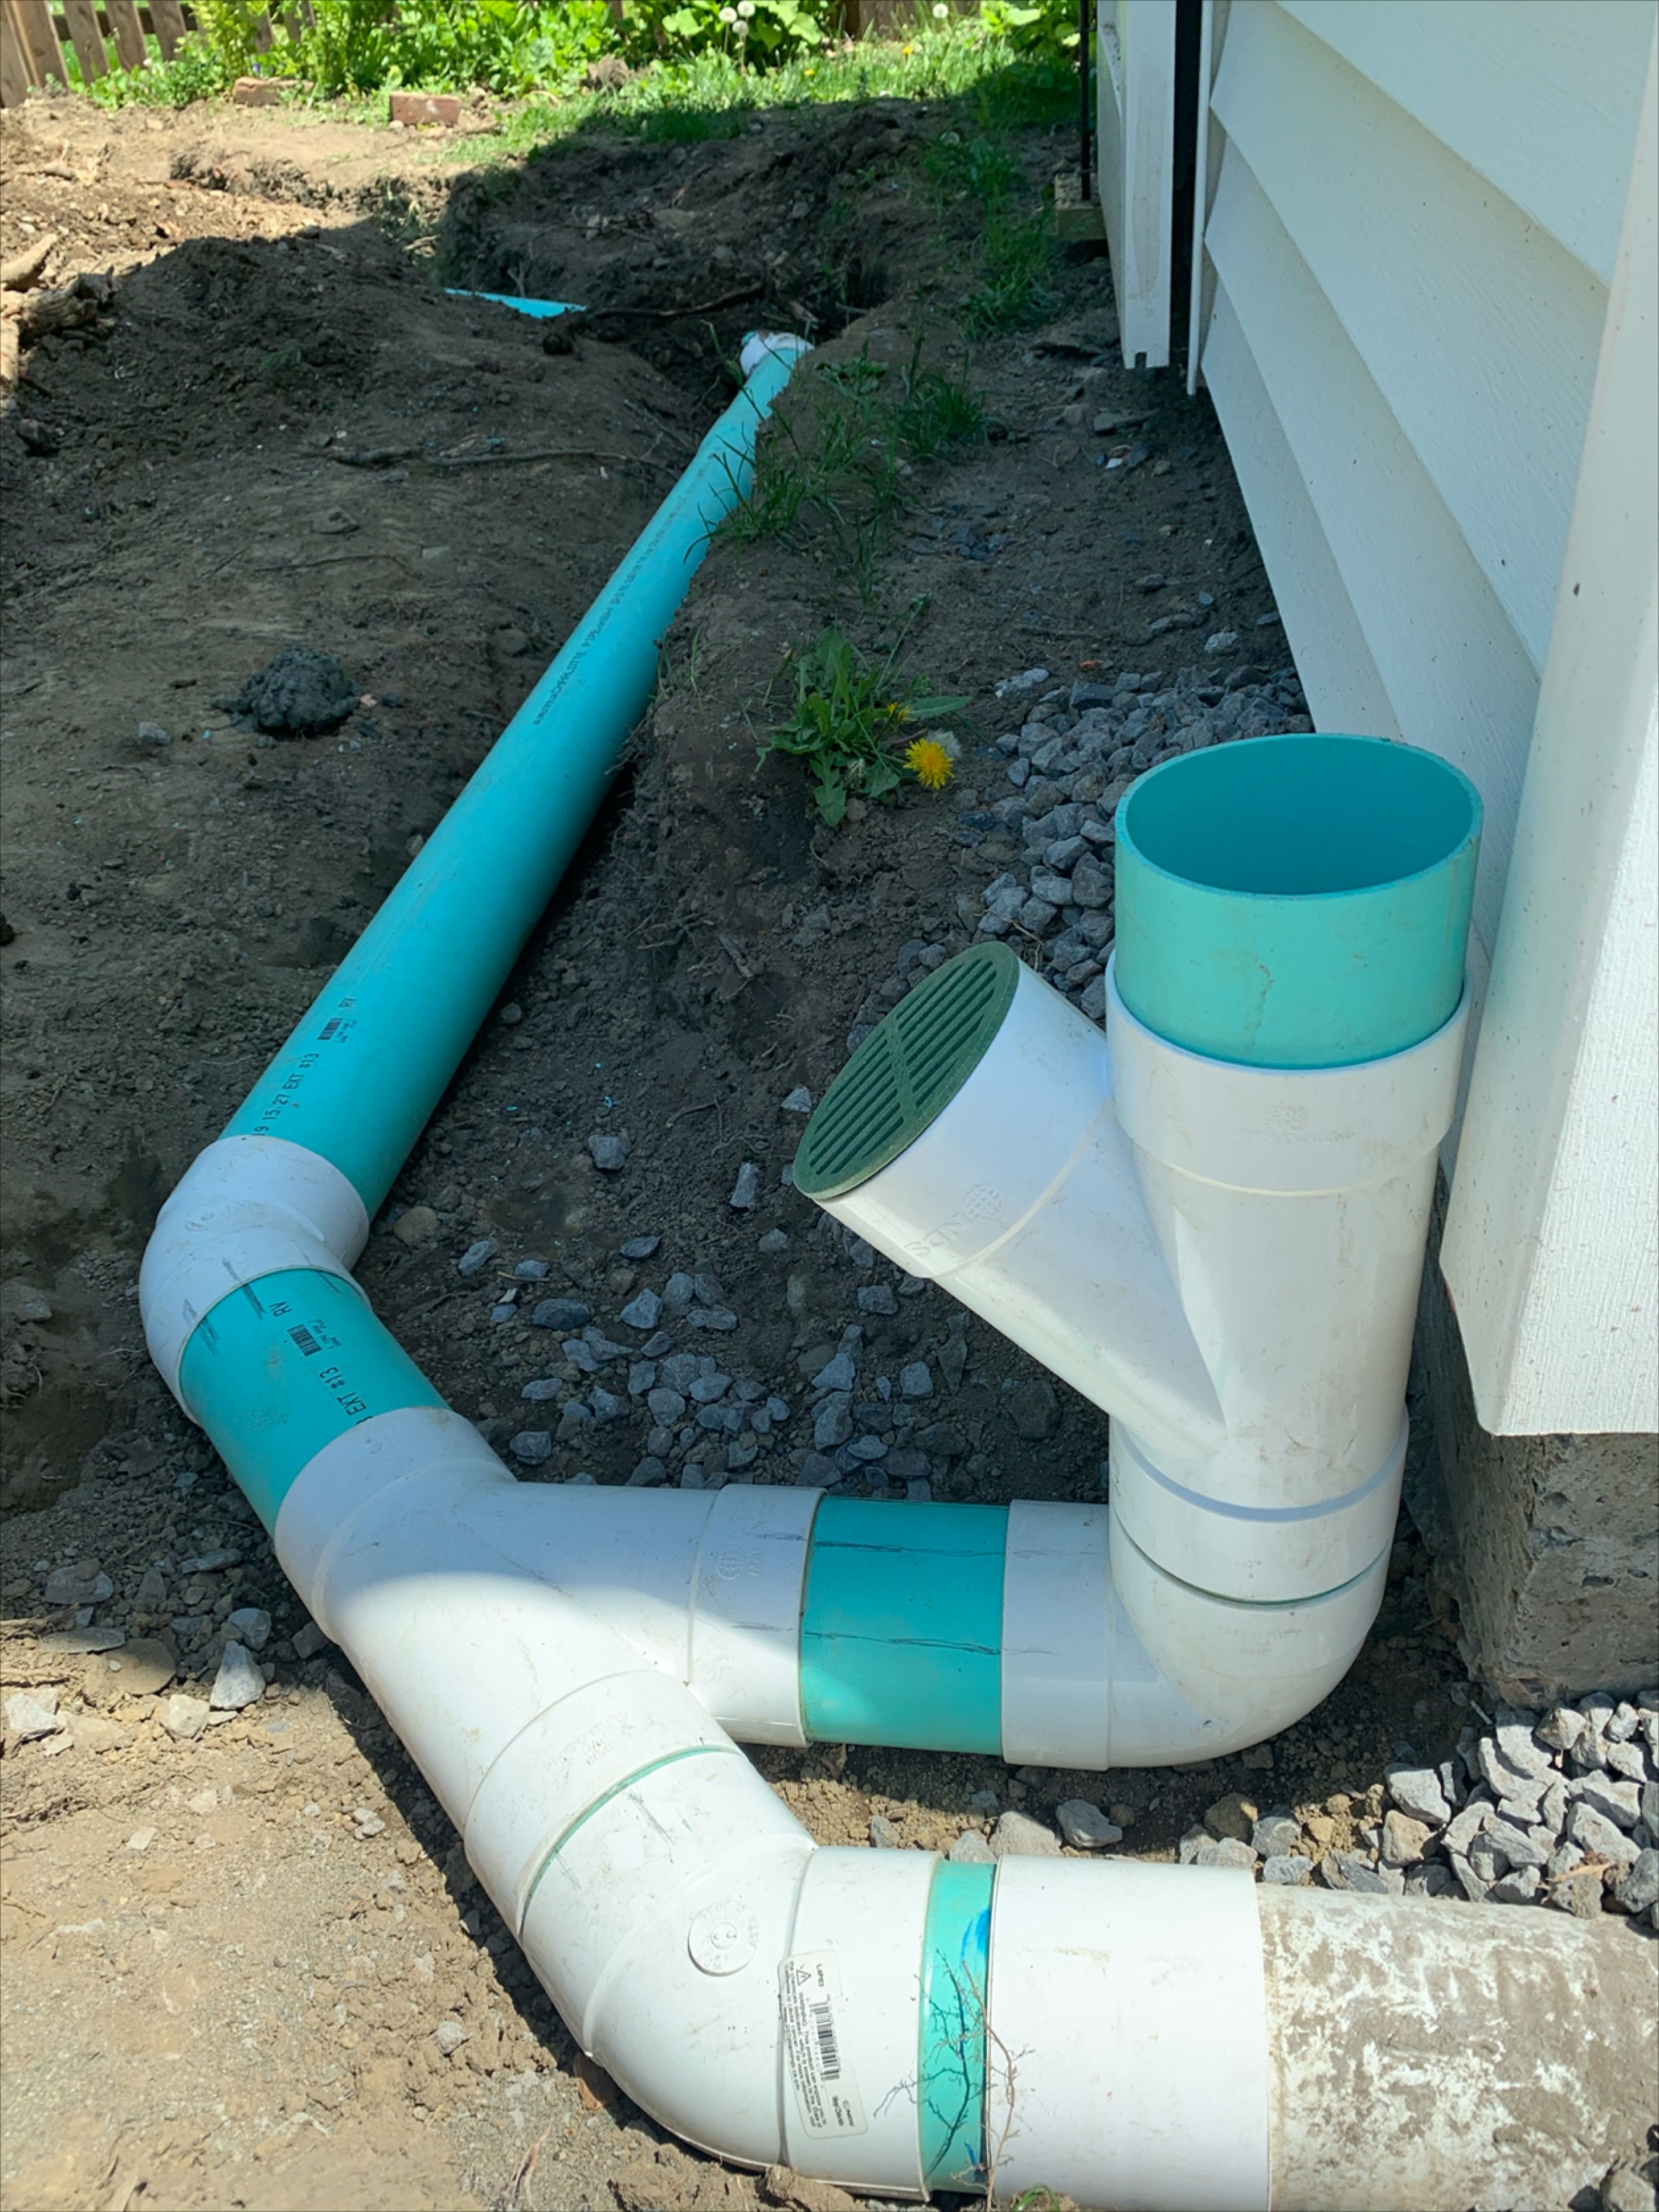 Underground Gutter Downspout Water Drainage Install Piping Rainwater Away From Foundation Walls In 2020 Drainage Downspout Drainage Underground Drainage